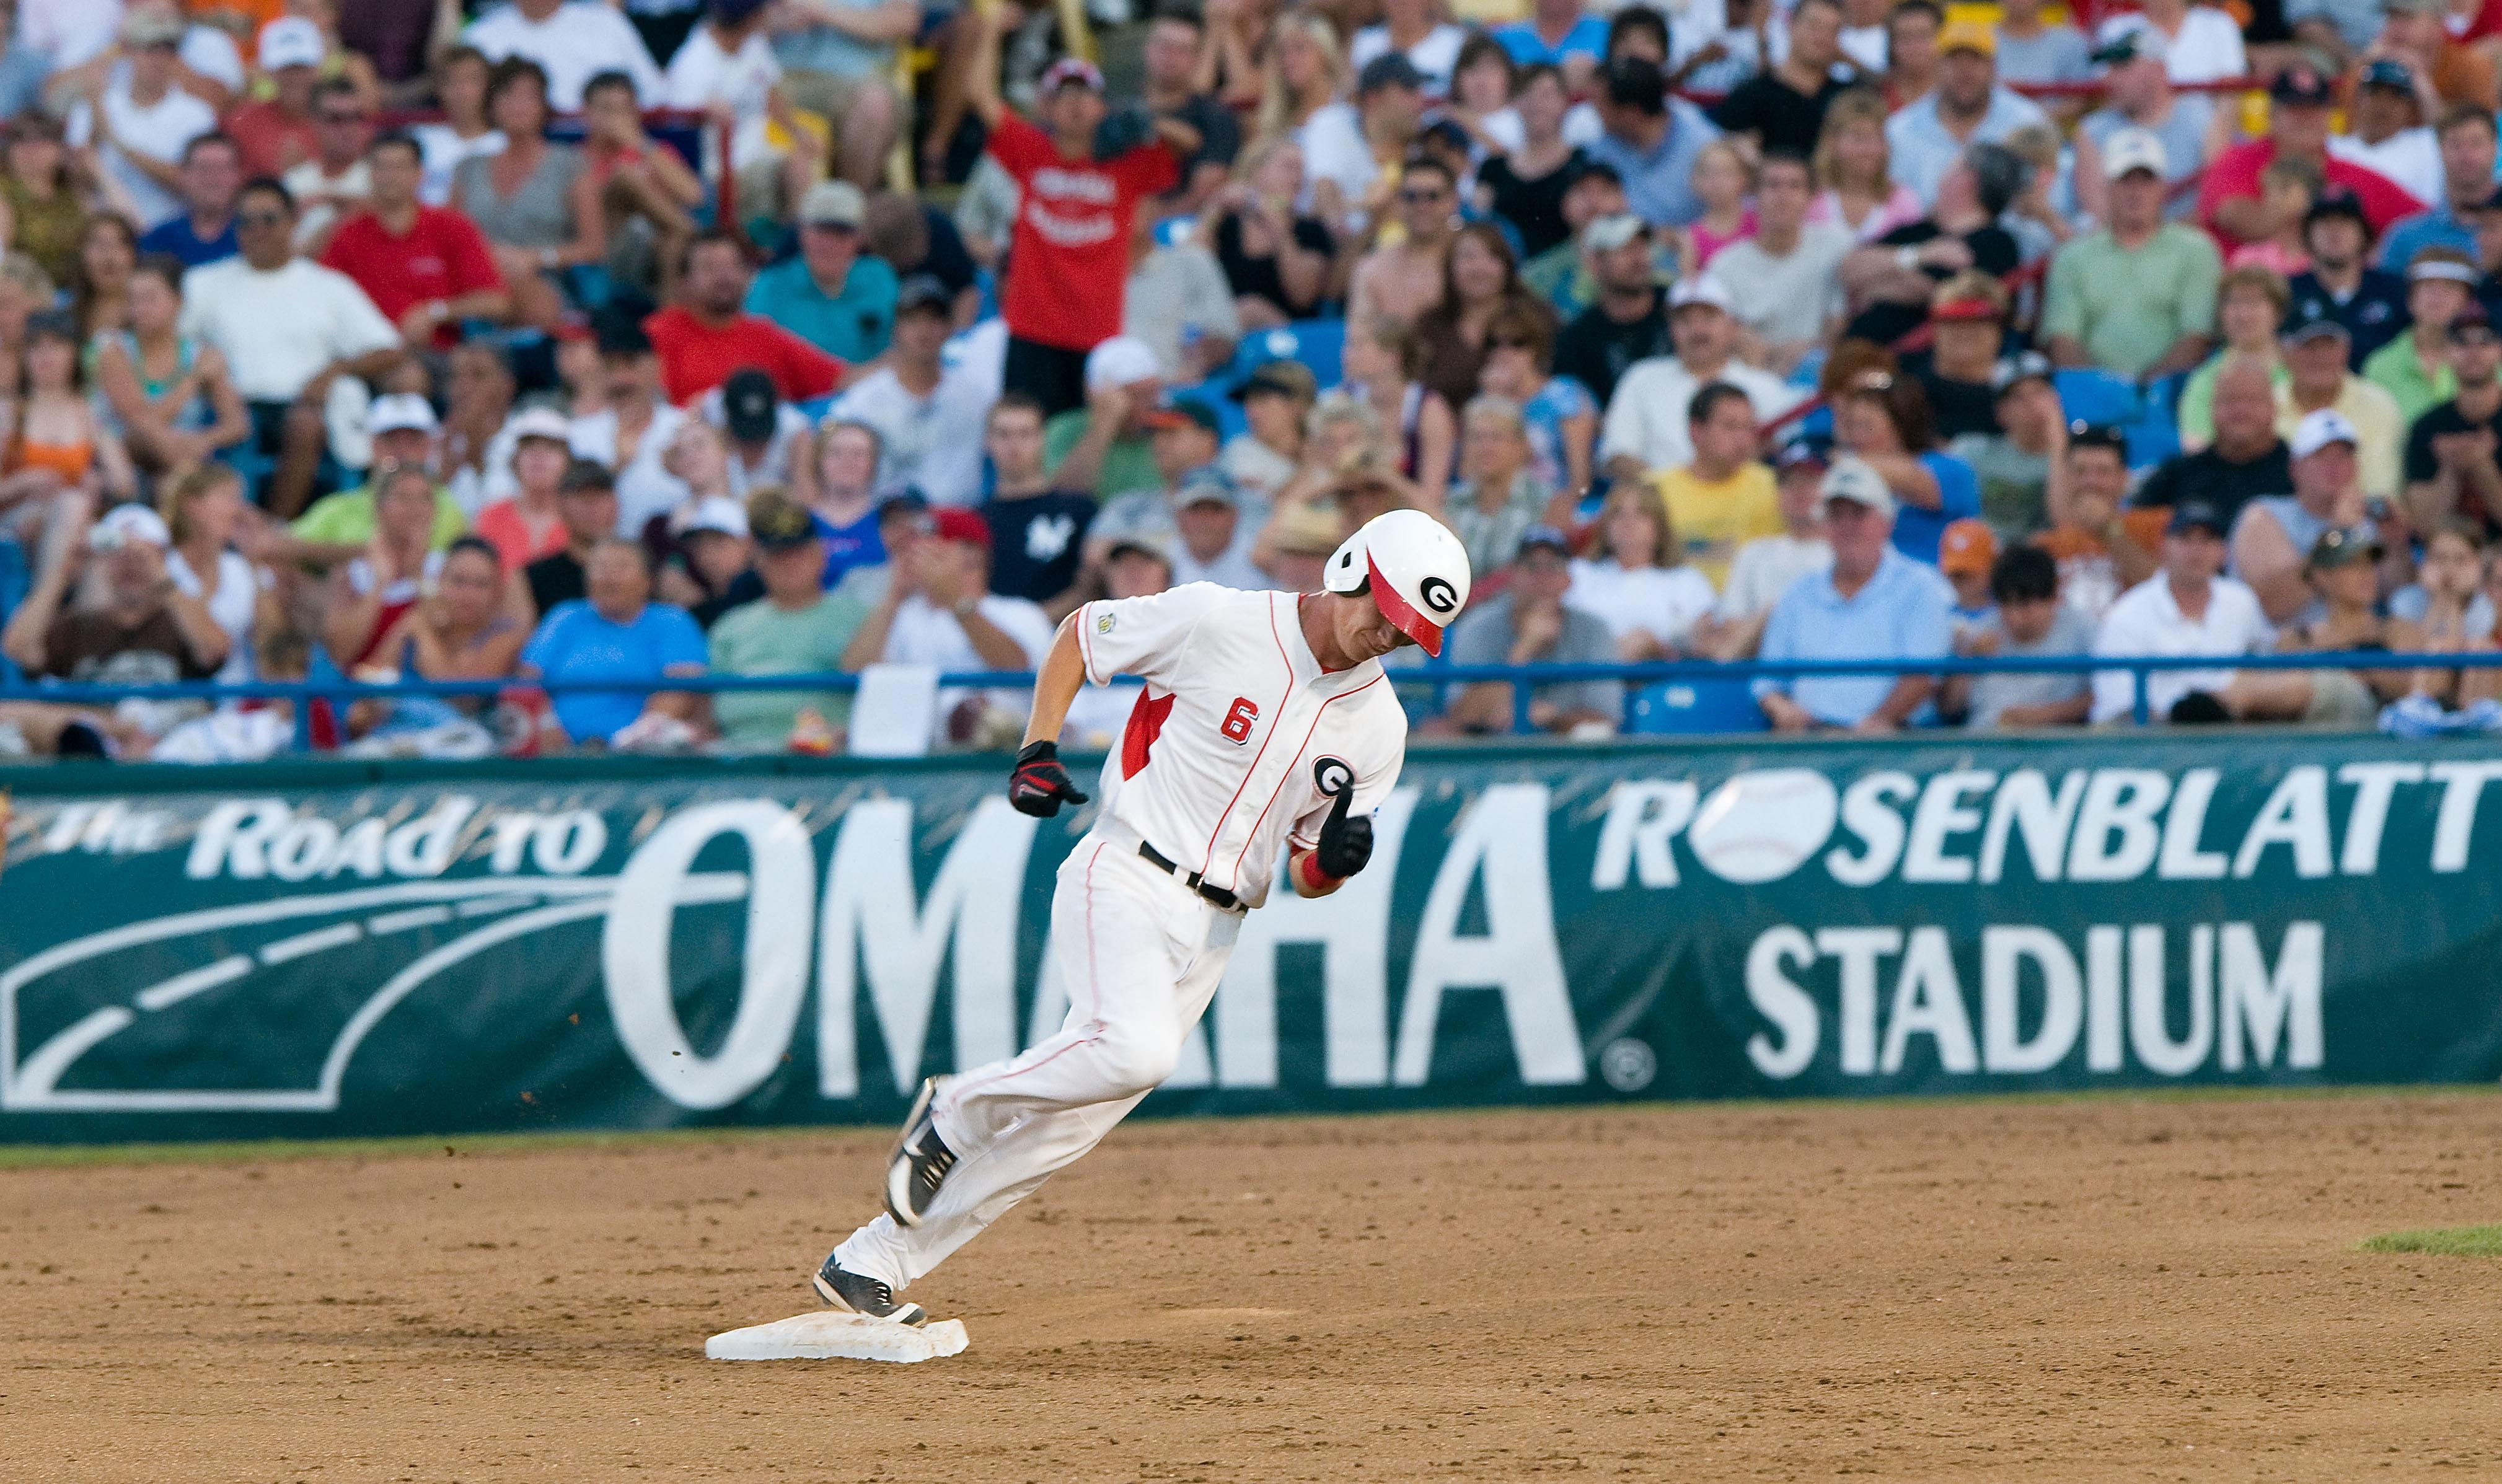 Georgia baseball's Gordon Beckham homers at the College World Series.